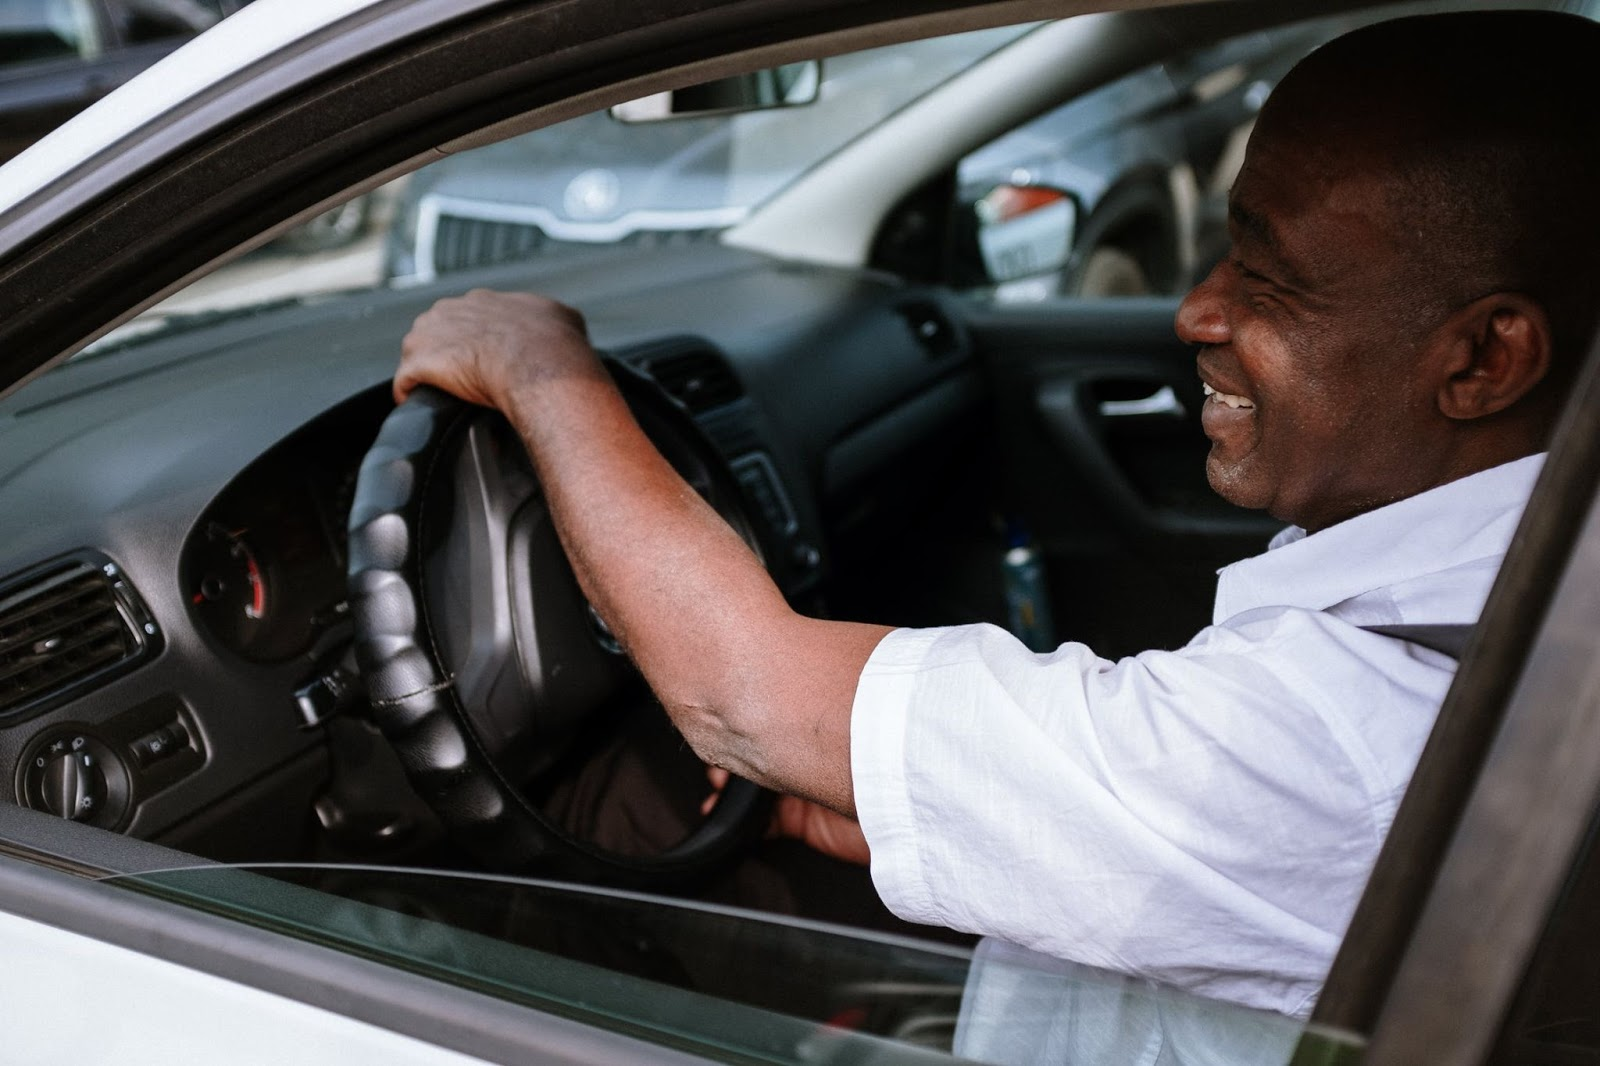 An older man in a white shirt smiles as he drives his car with the window rolled down